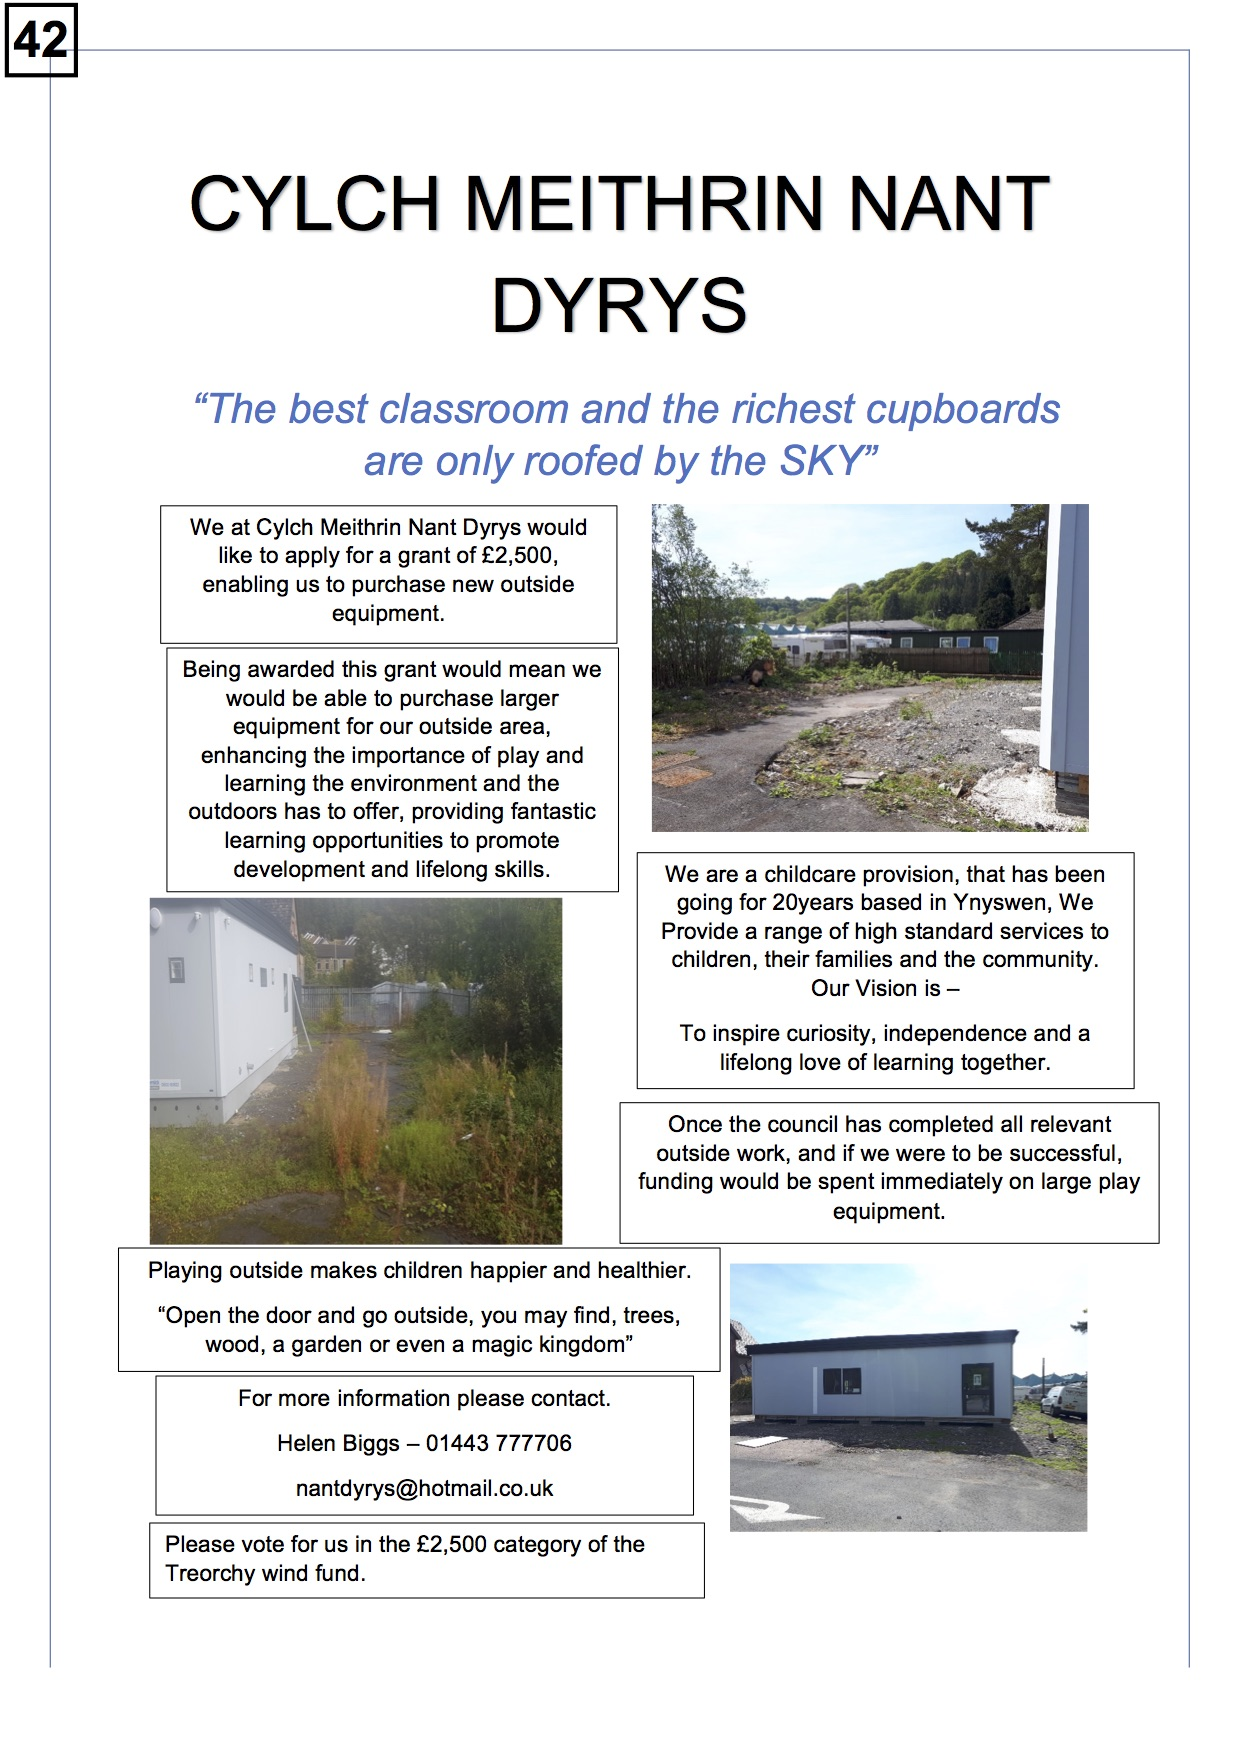 42. Cylch Meithrin ND - Poster - 260919.